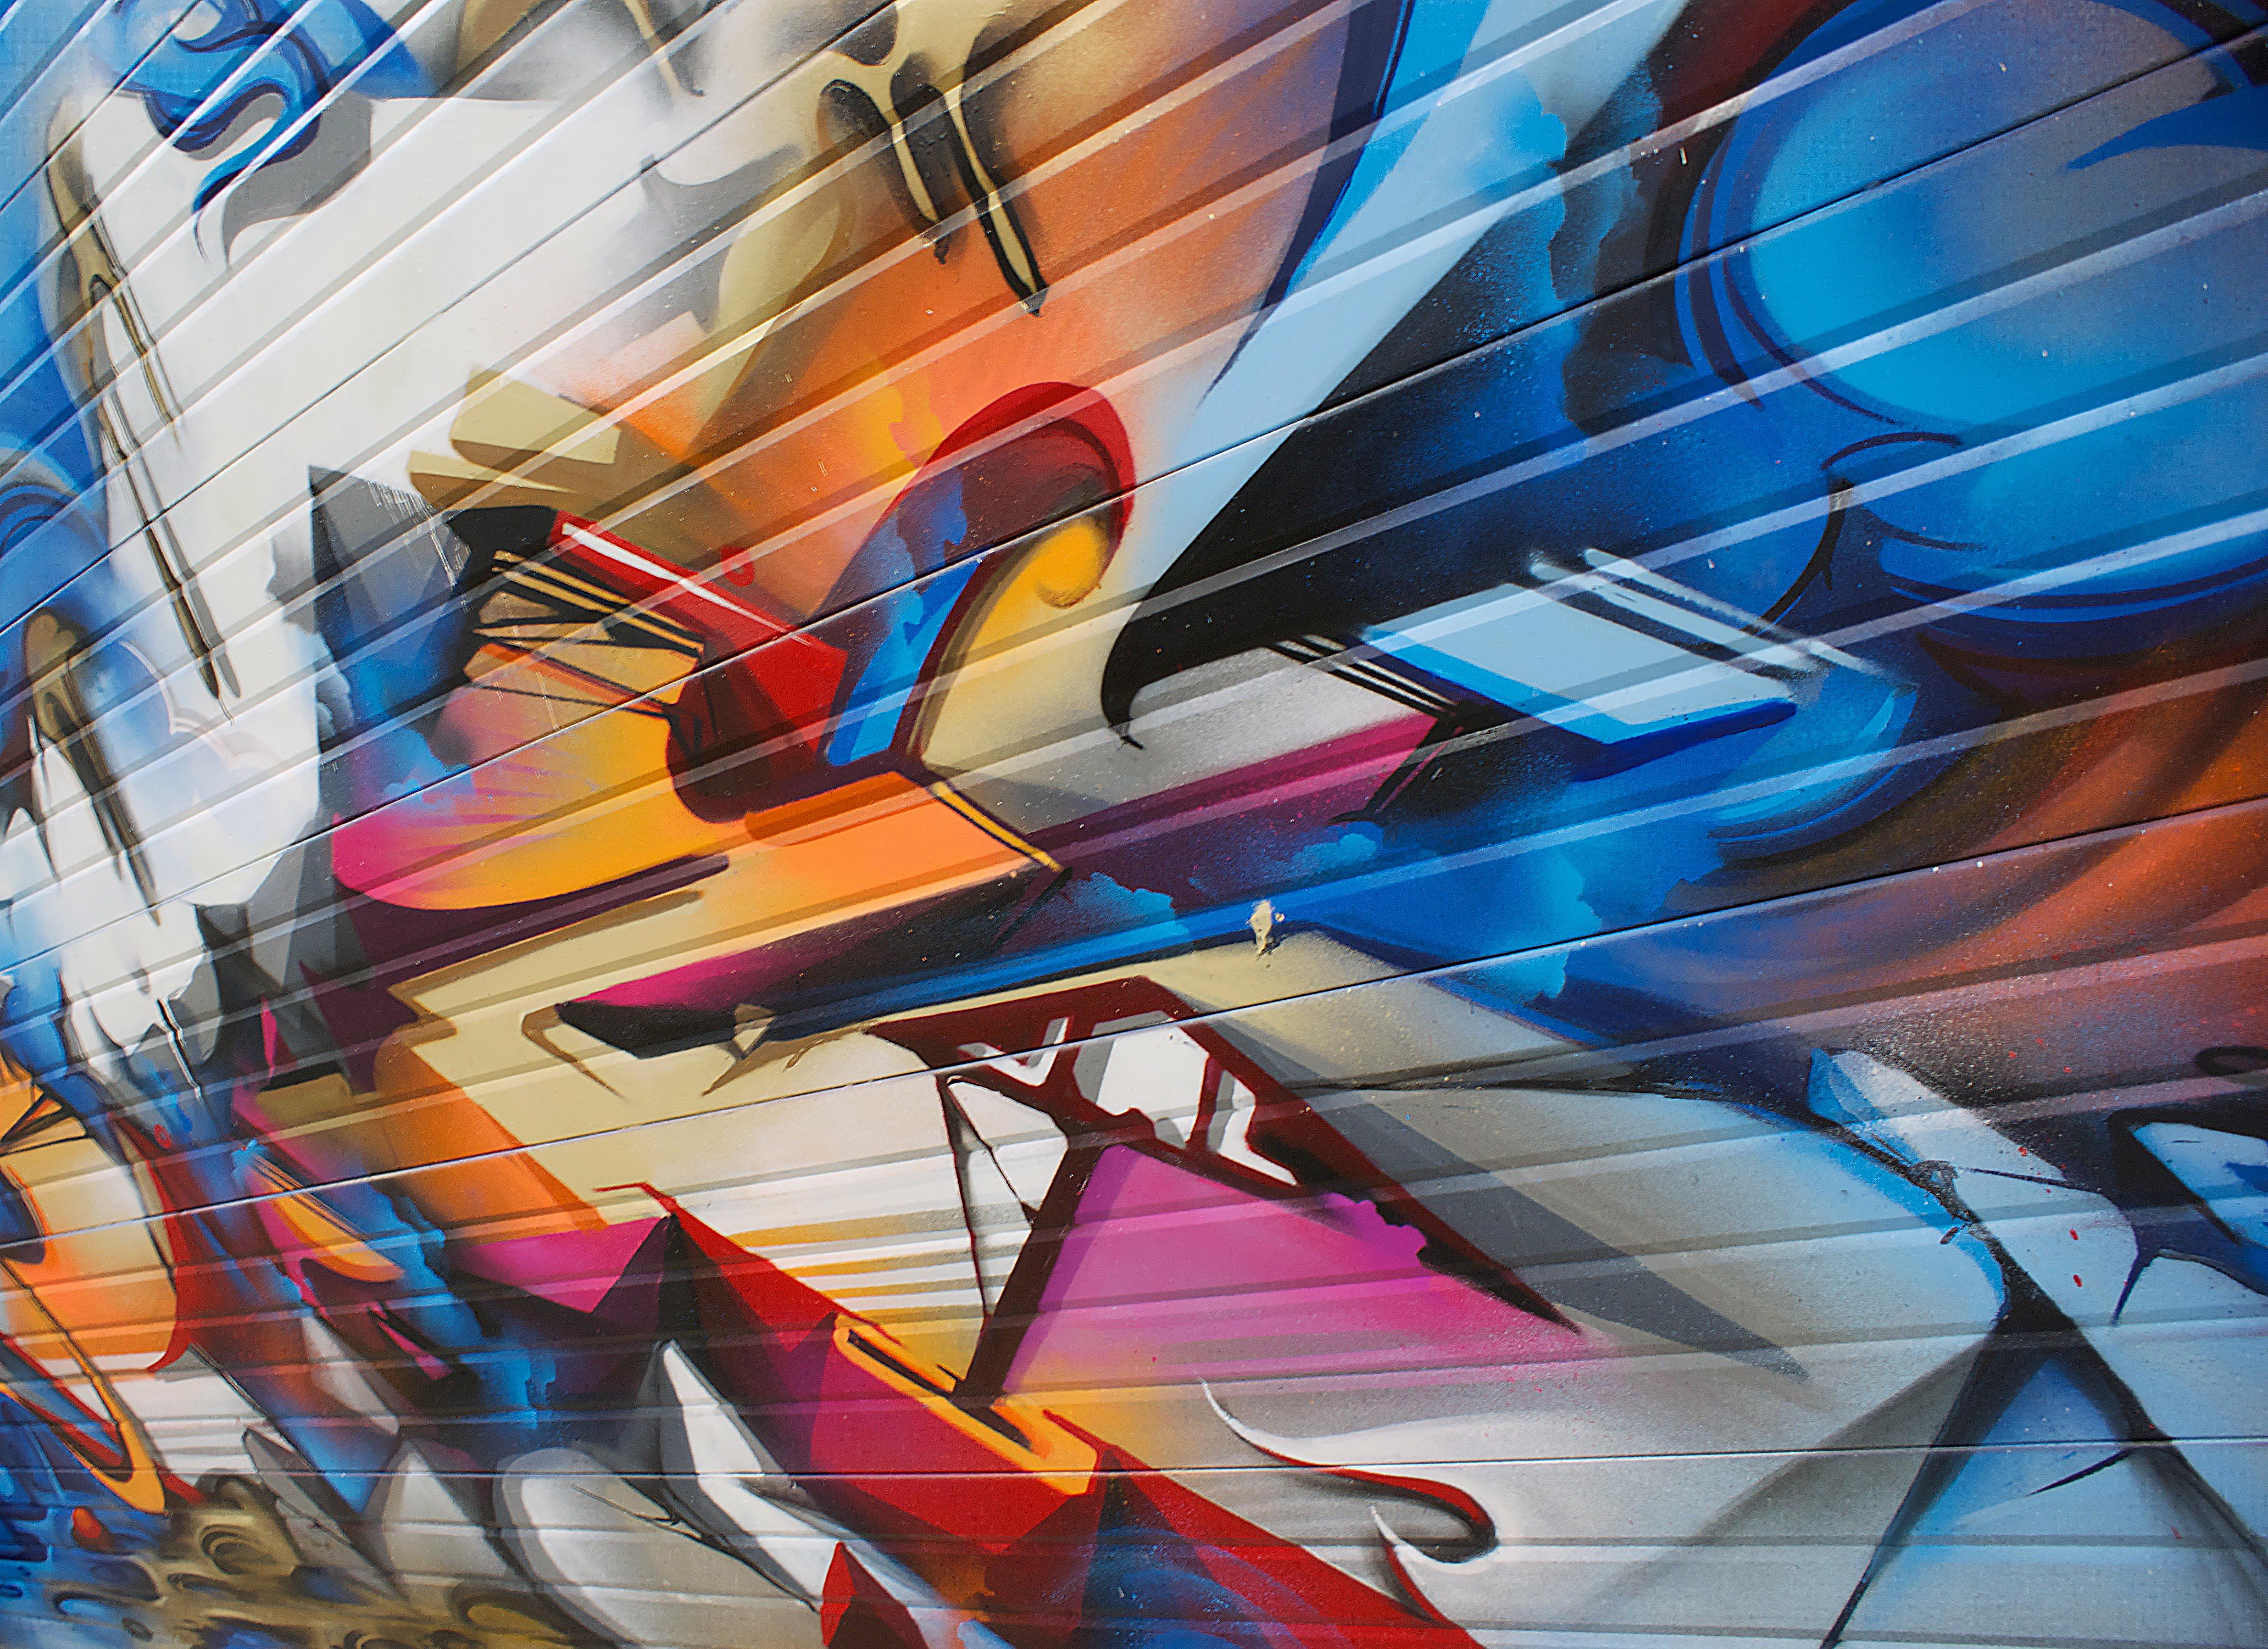 A work by Does - Heerlen the netherlands mural detail 3